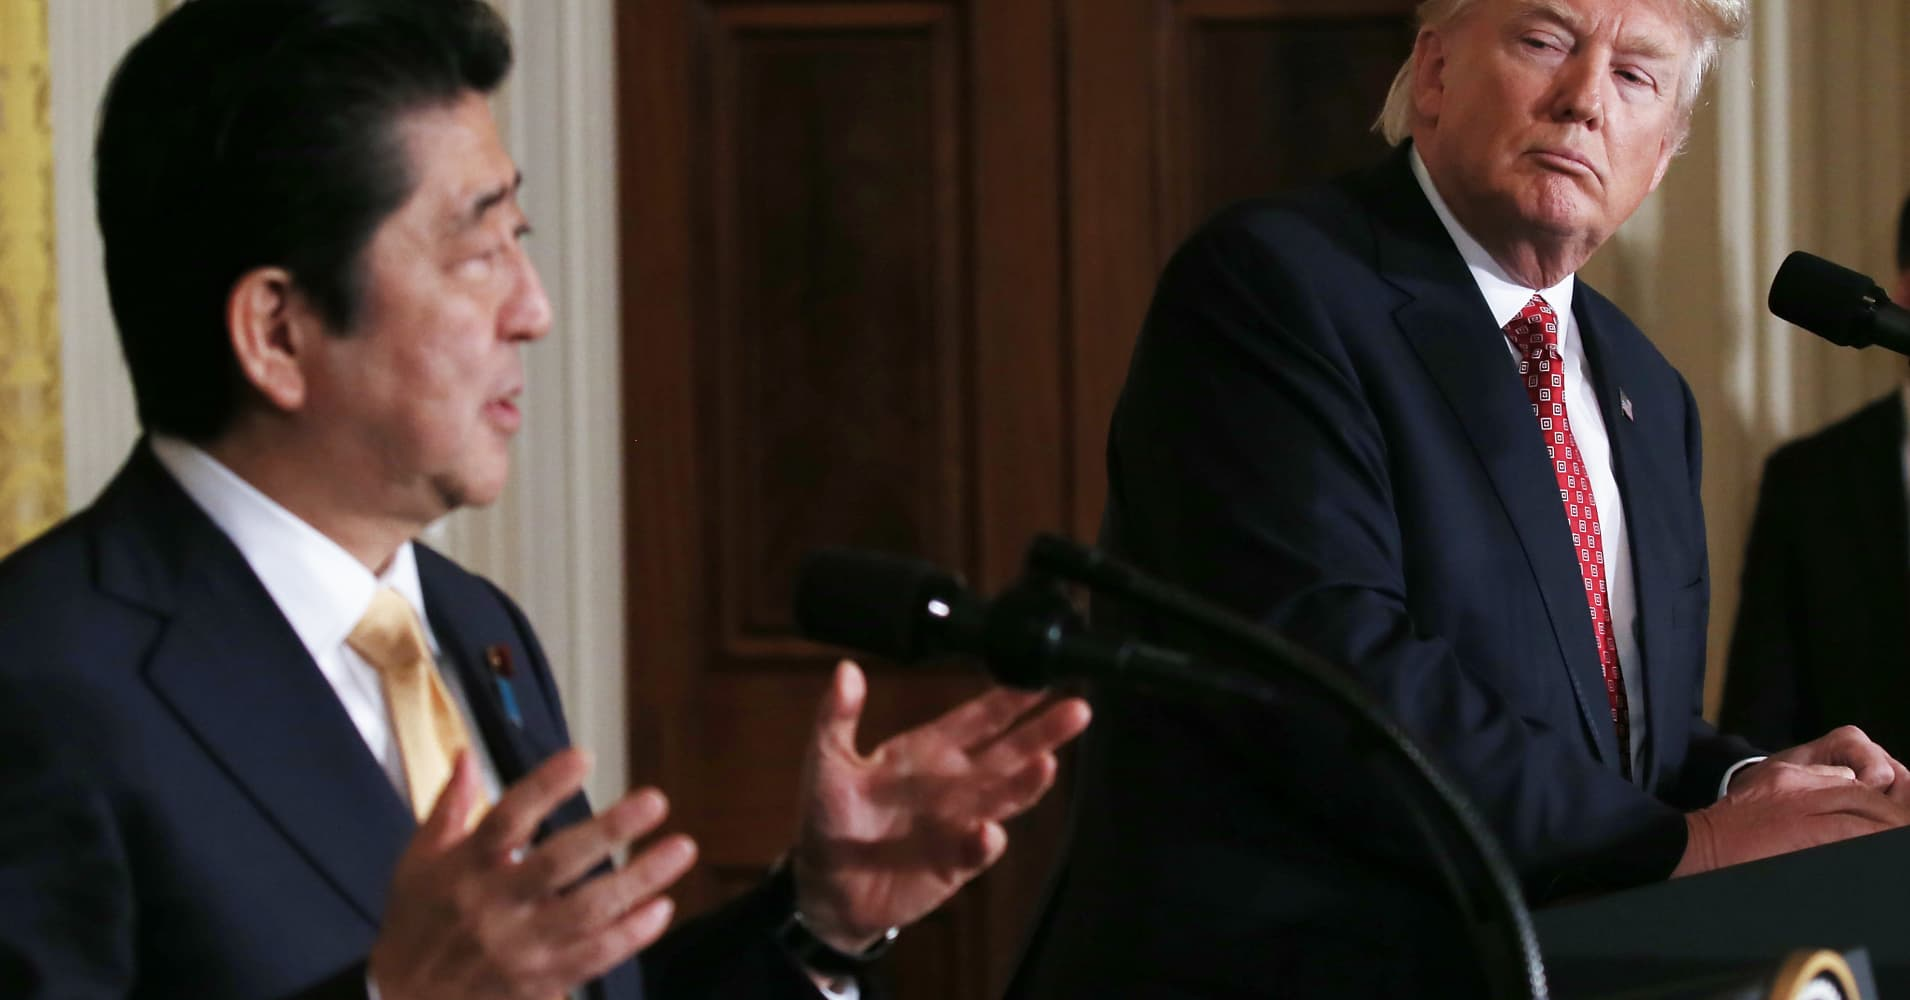 PM Abe: Japan will take steps with U.S. to deter N.Korea